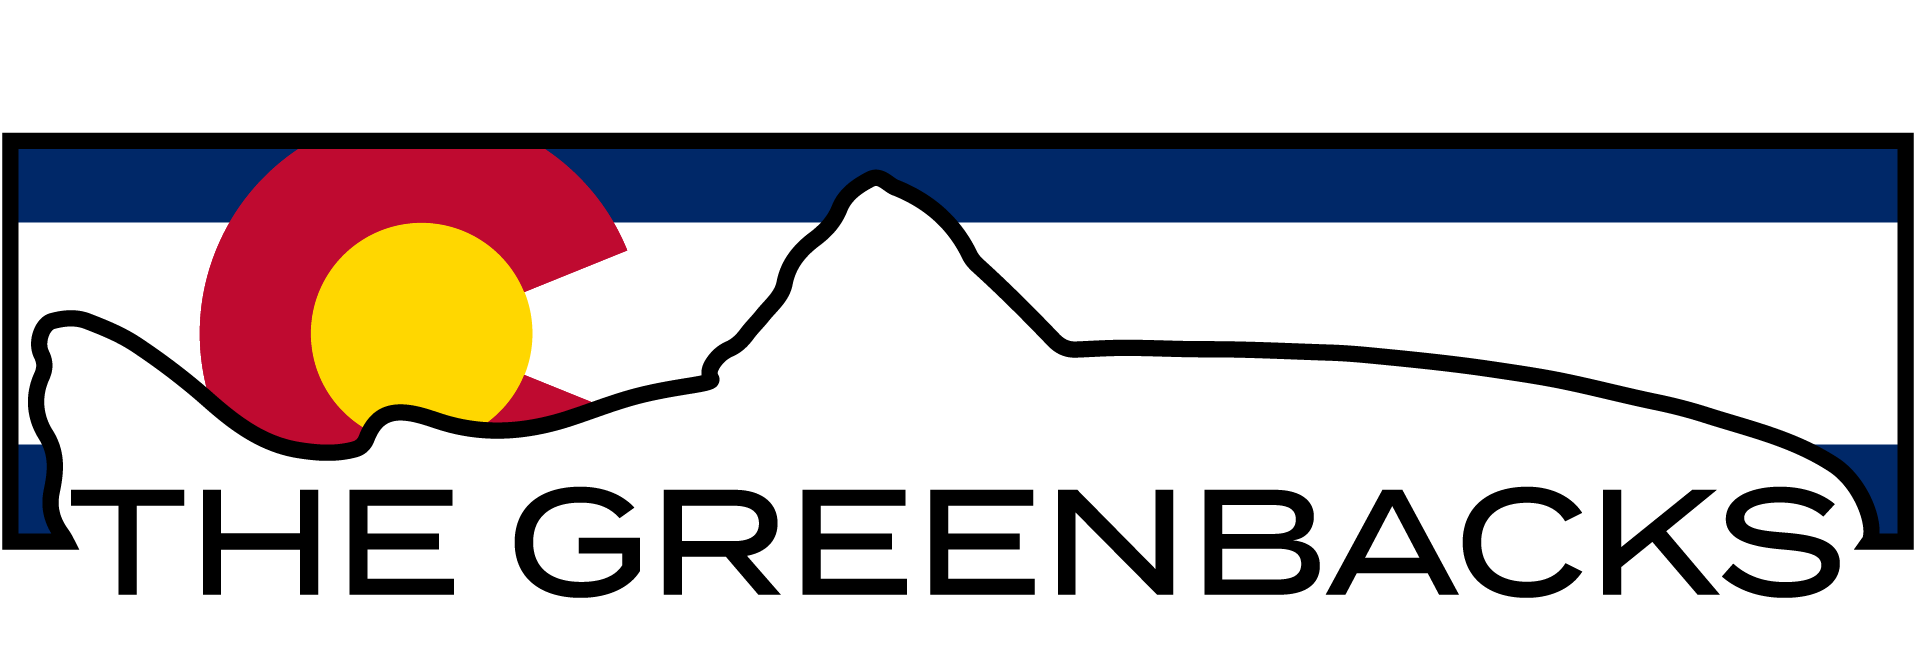 CO GB Logo.png